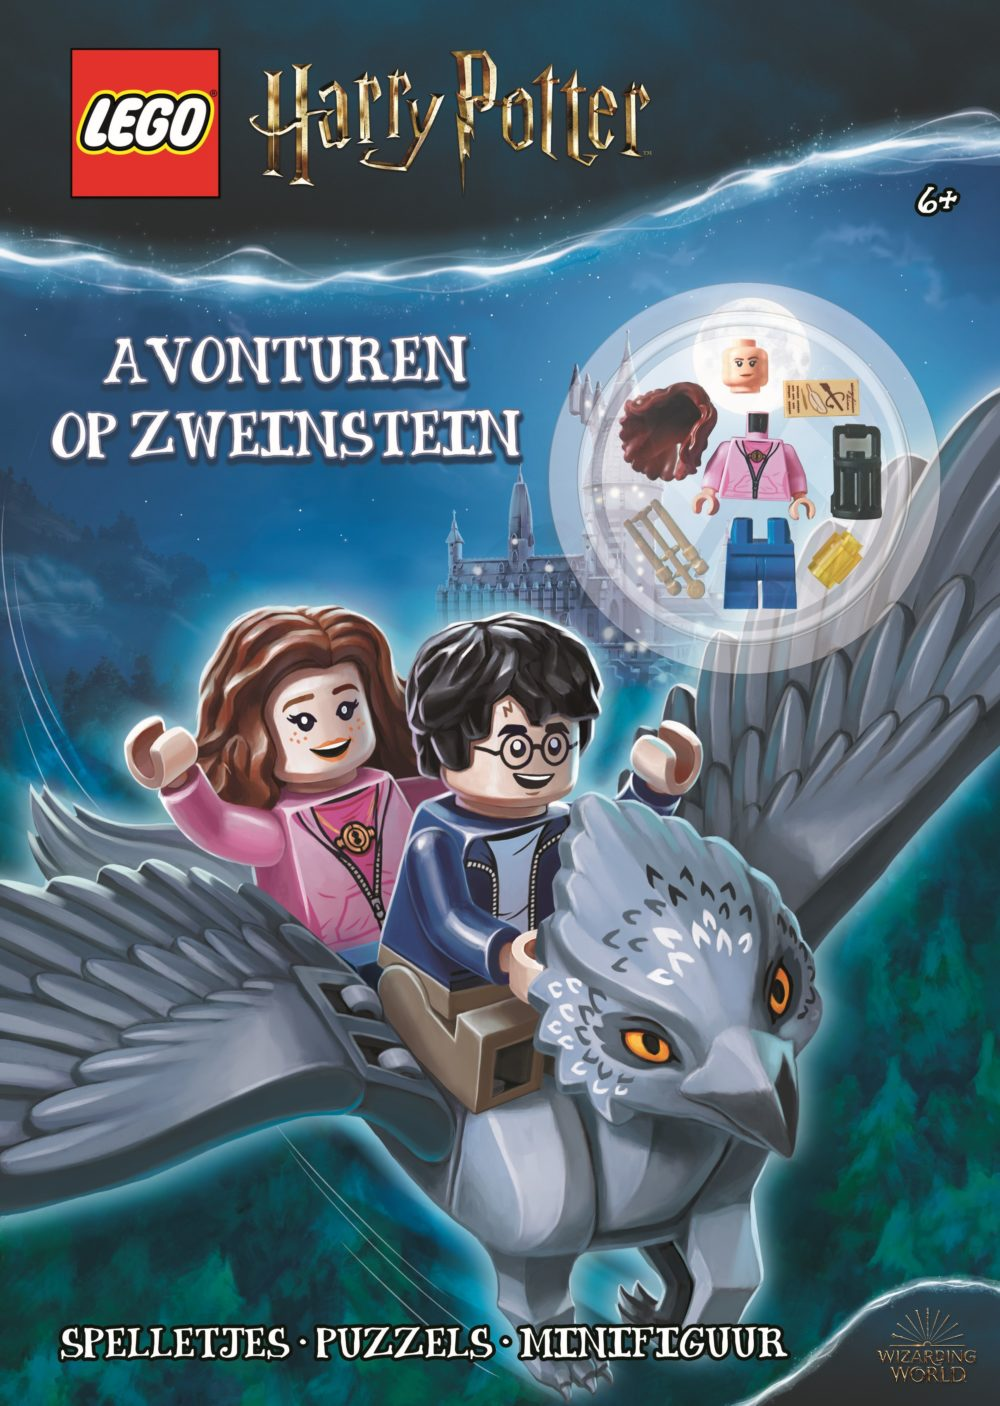 LEGO Special: Harry Potter